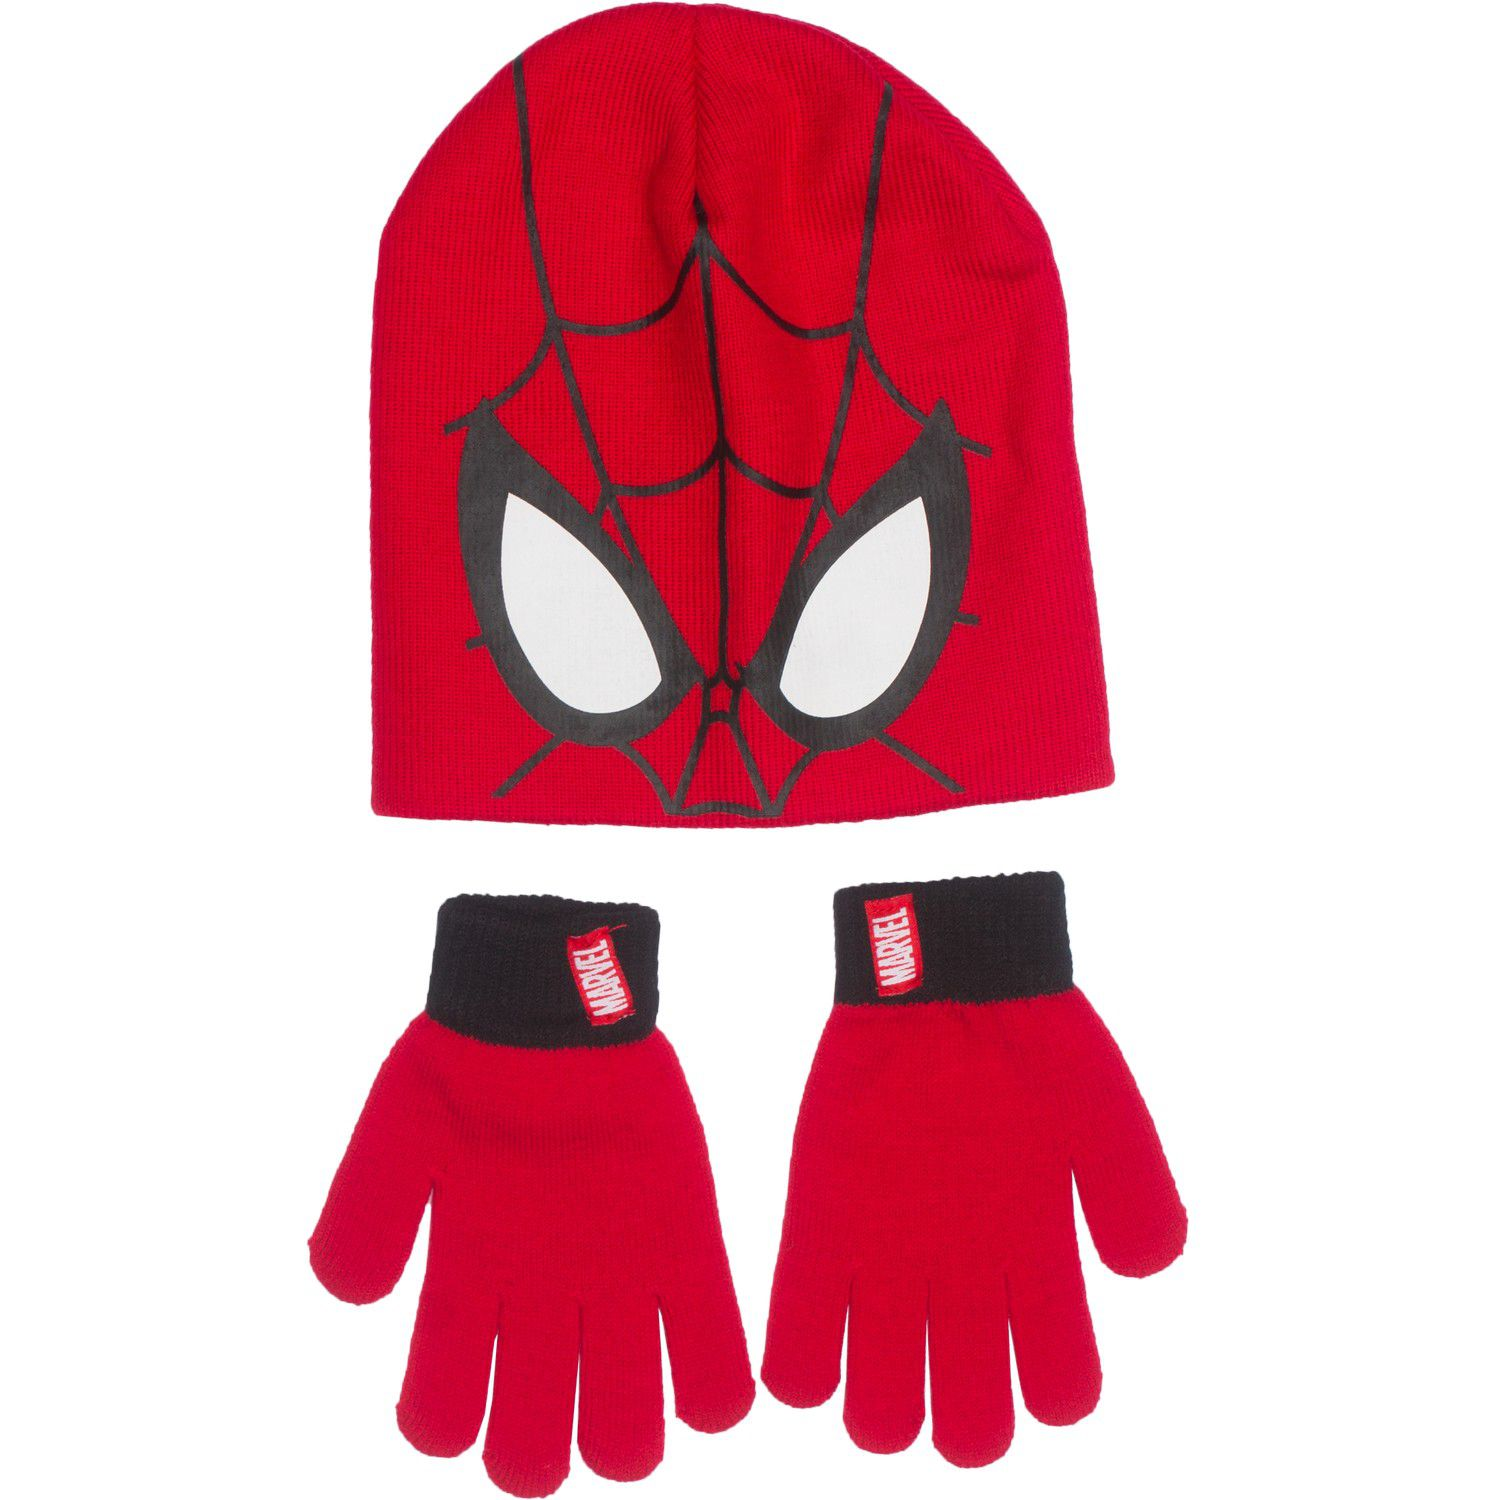 BOYS SPIDER-MAN CHARACTER WINTER HAT,GLOVE /& SCARF SET GOOD QUALITY